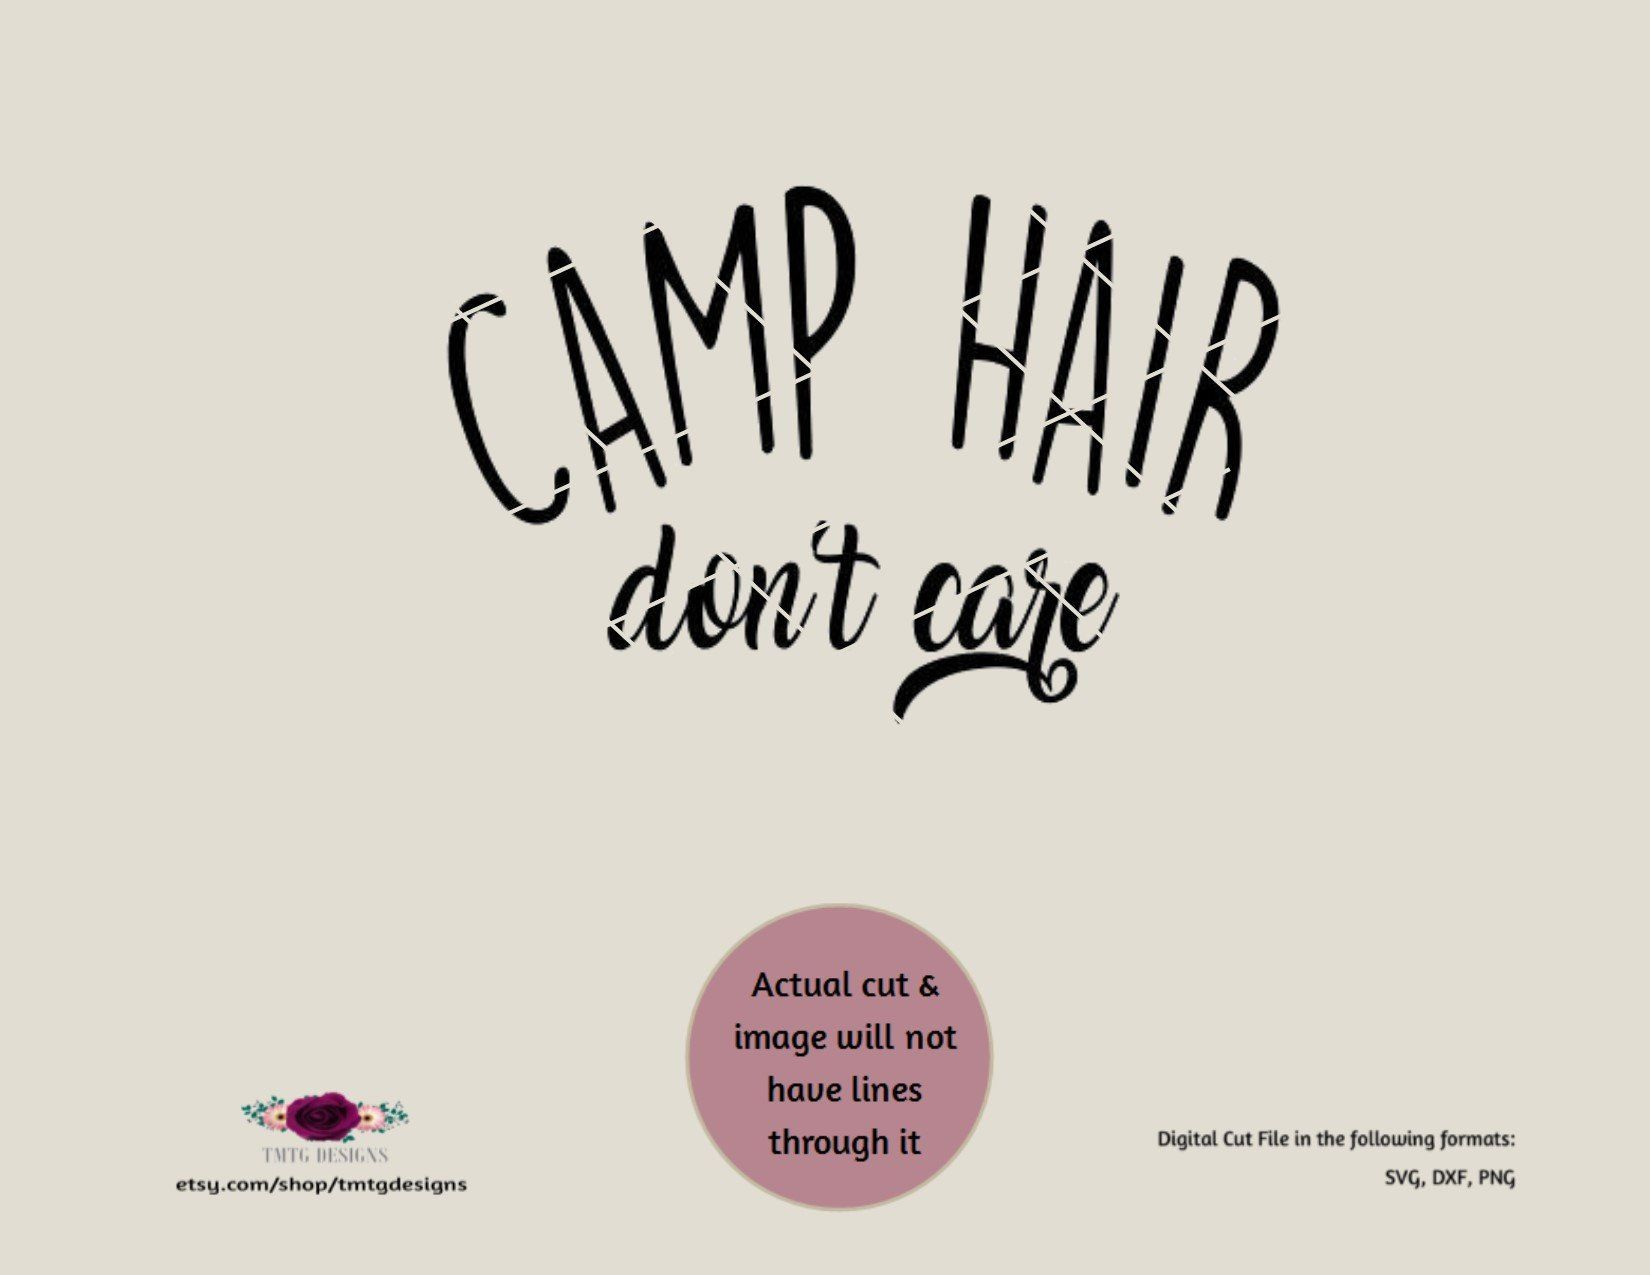 camp hair don't care svg, camping, messy hair, women's